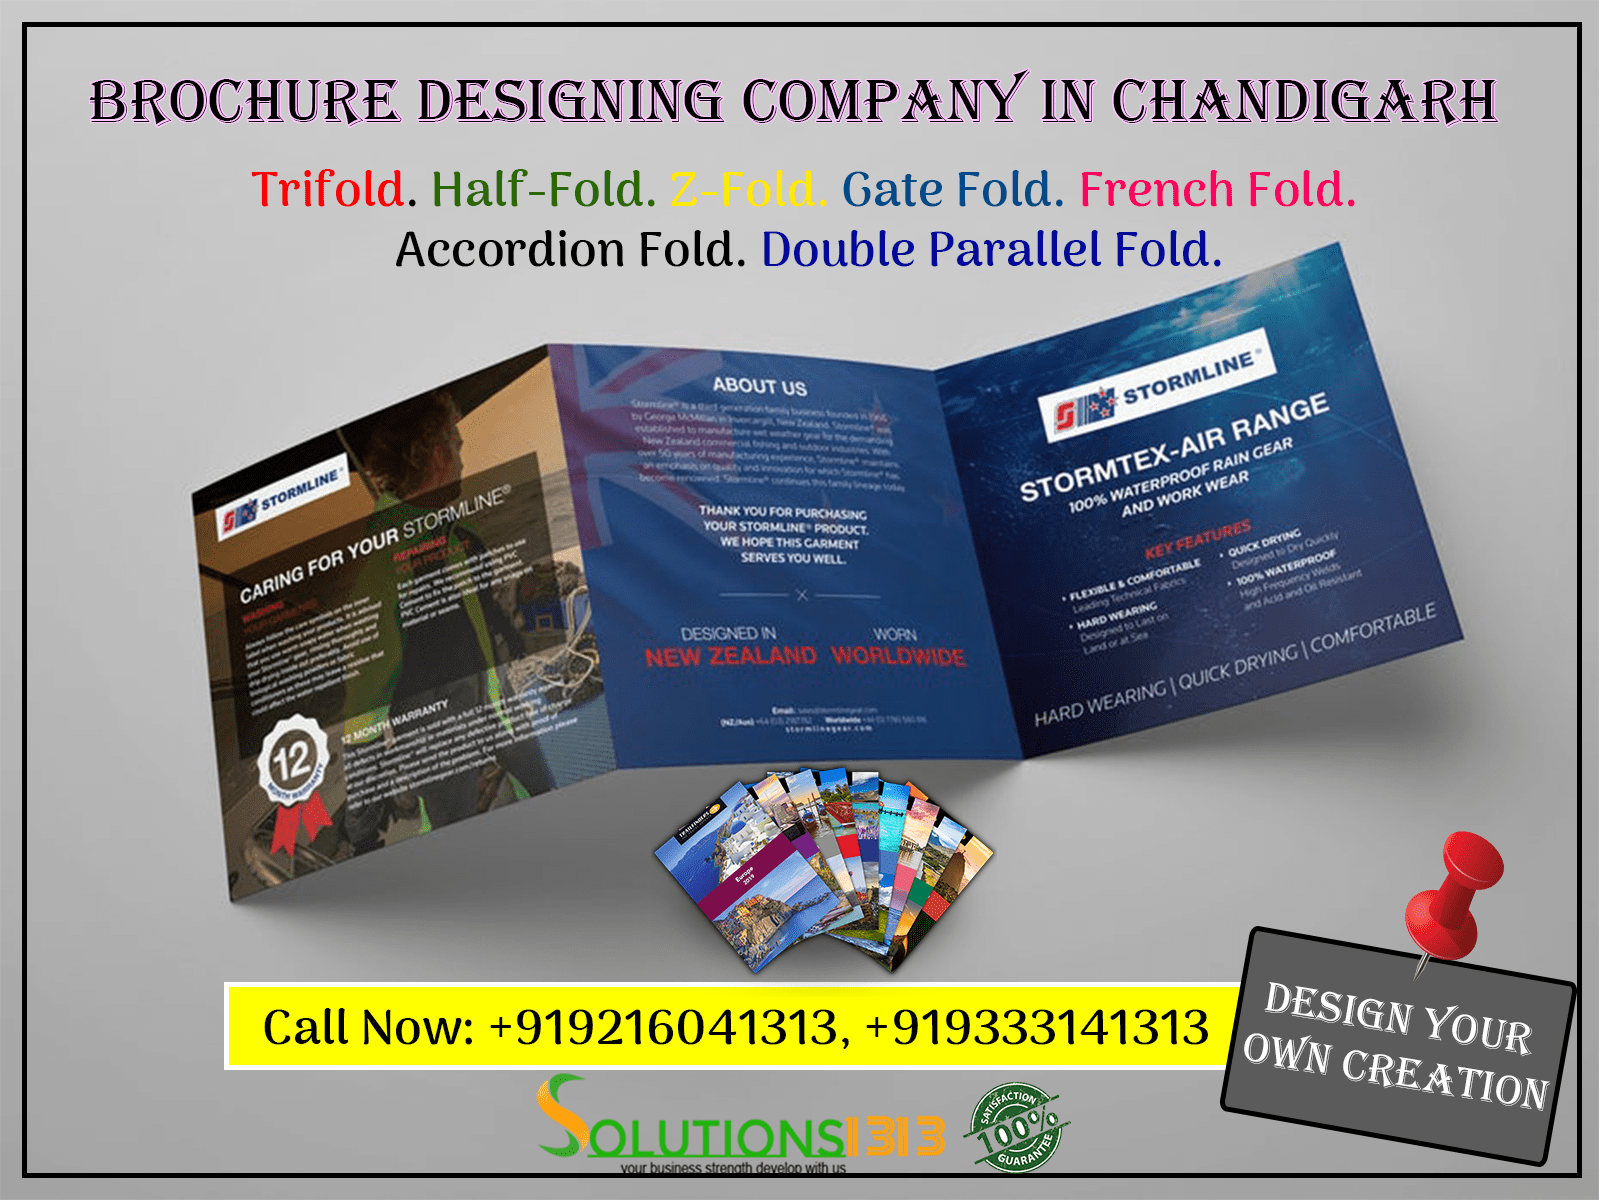 Brochure Designing Company in Chandigarh